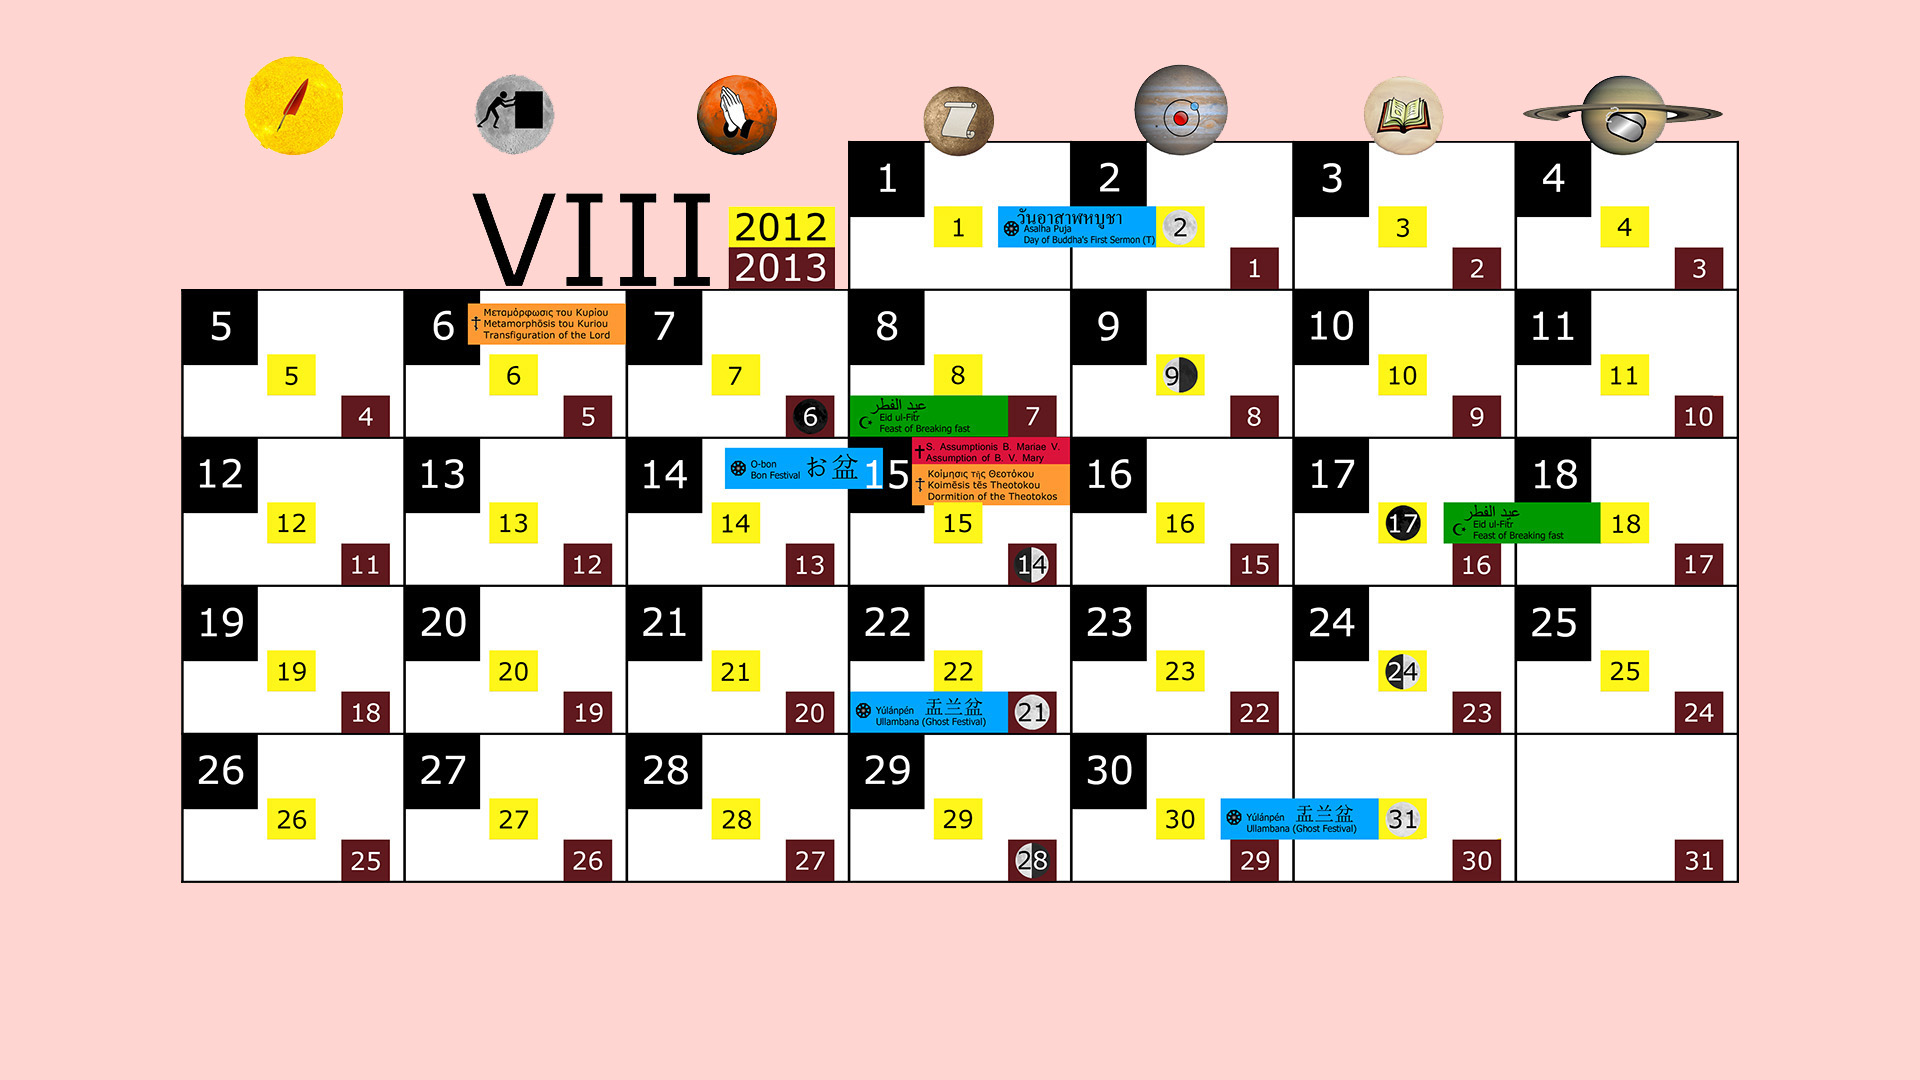 A monthly holiday calendar for August 2012 and 2013 with a pink background